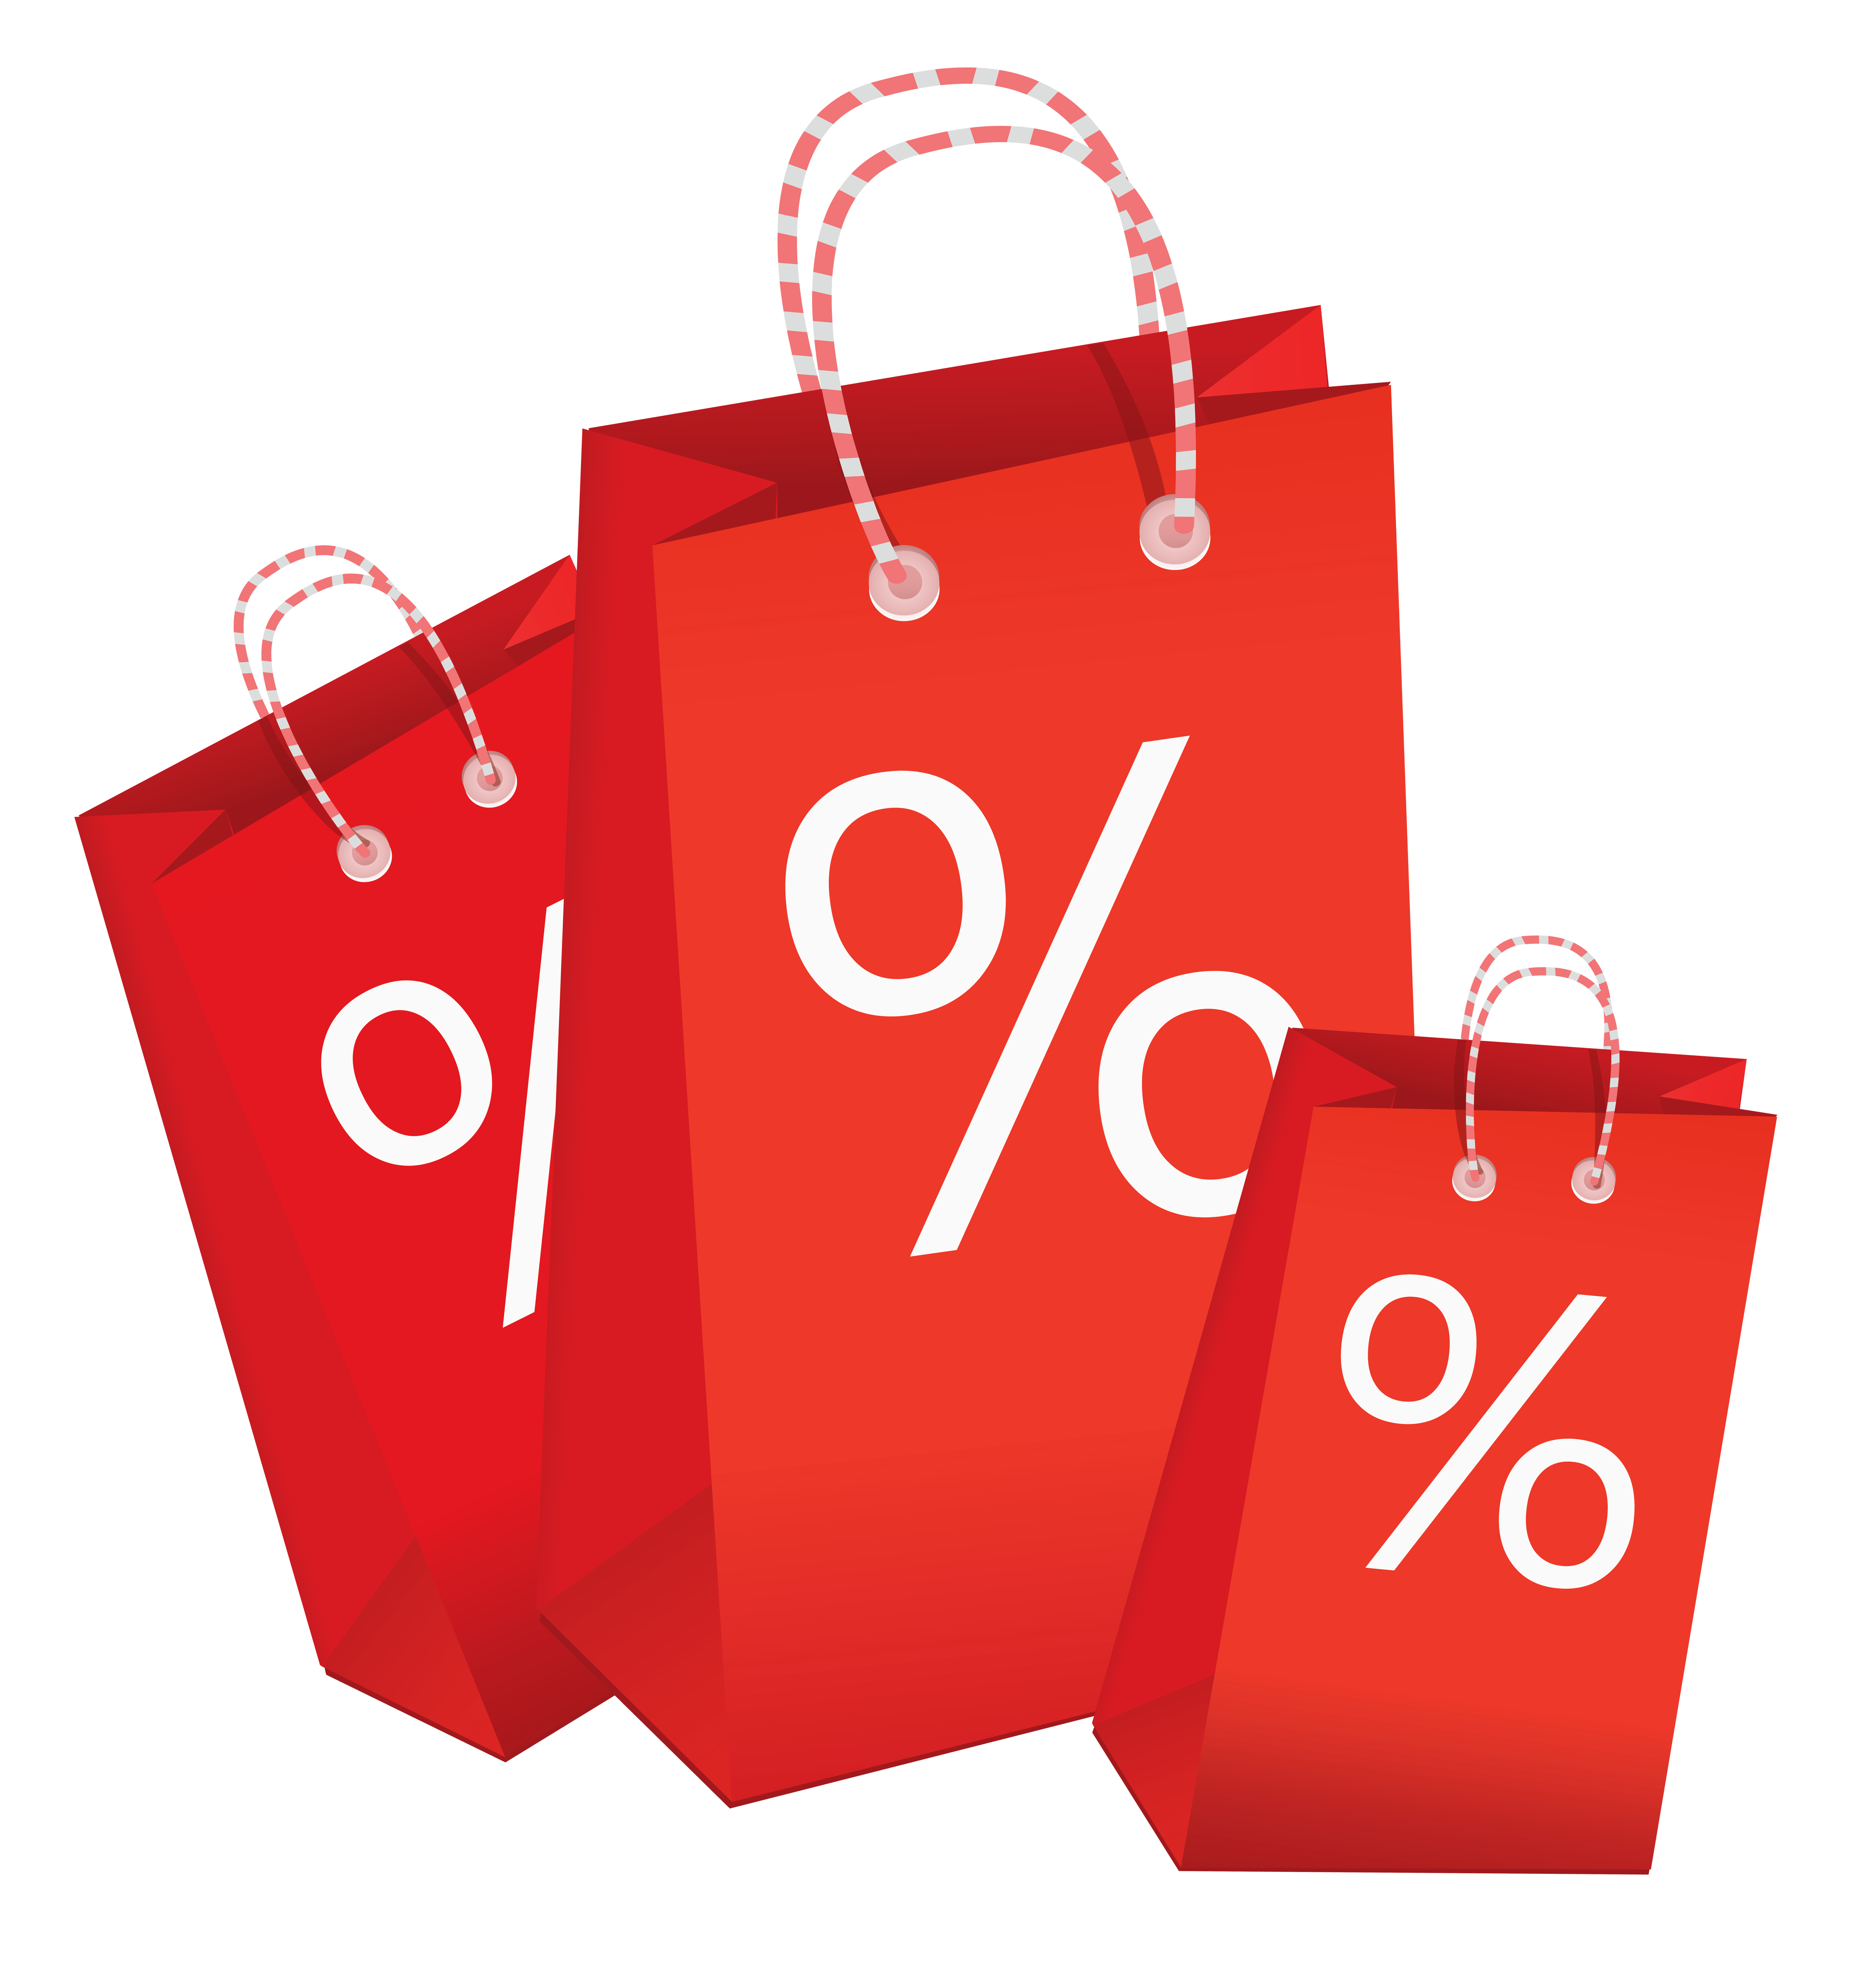 Discount tag png. Shoping bag with image